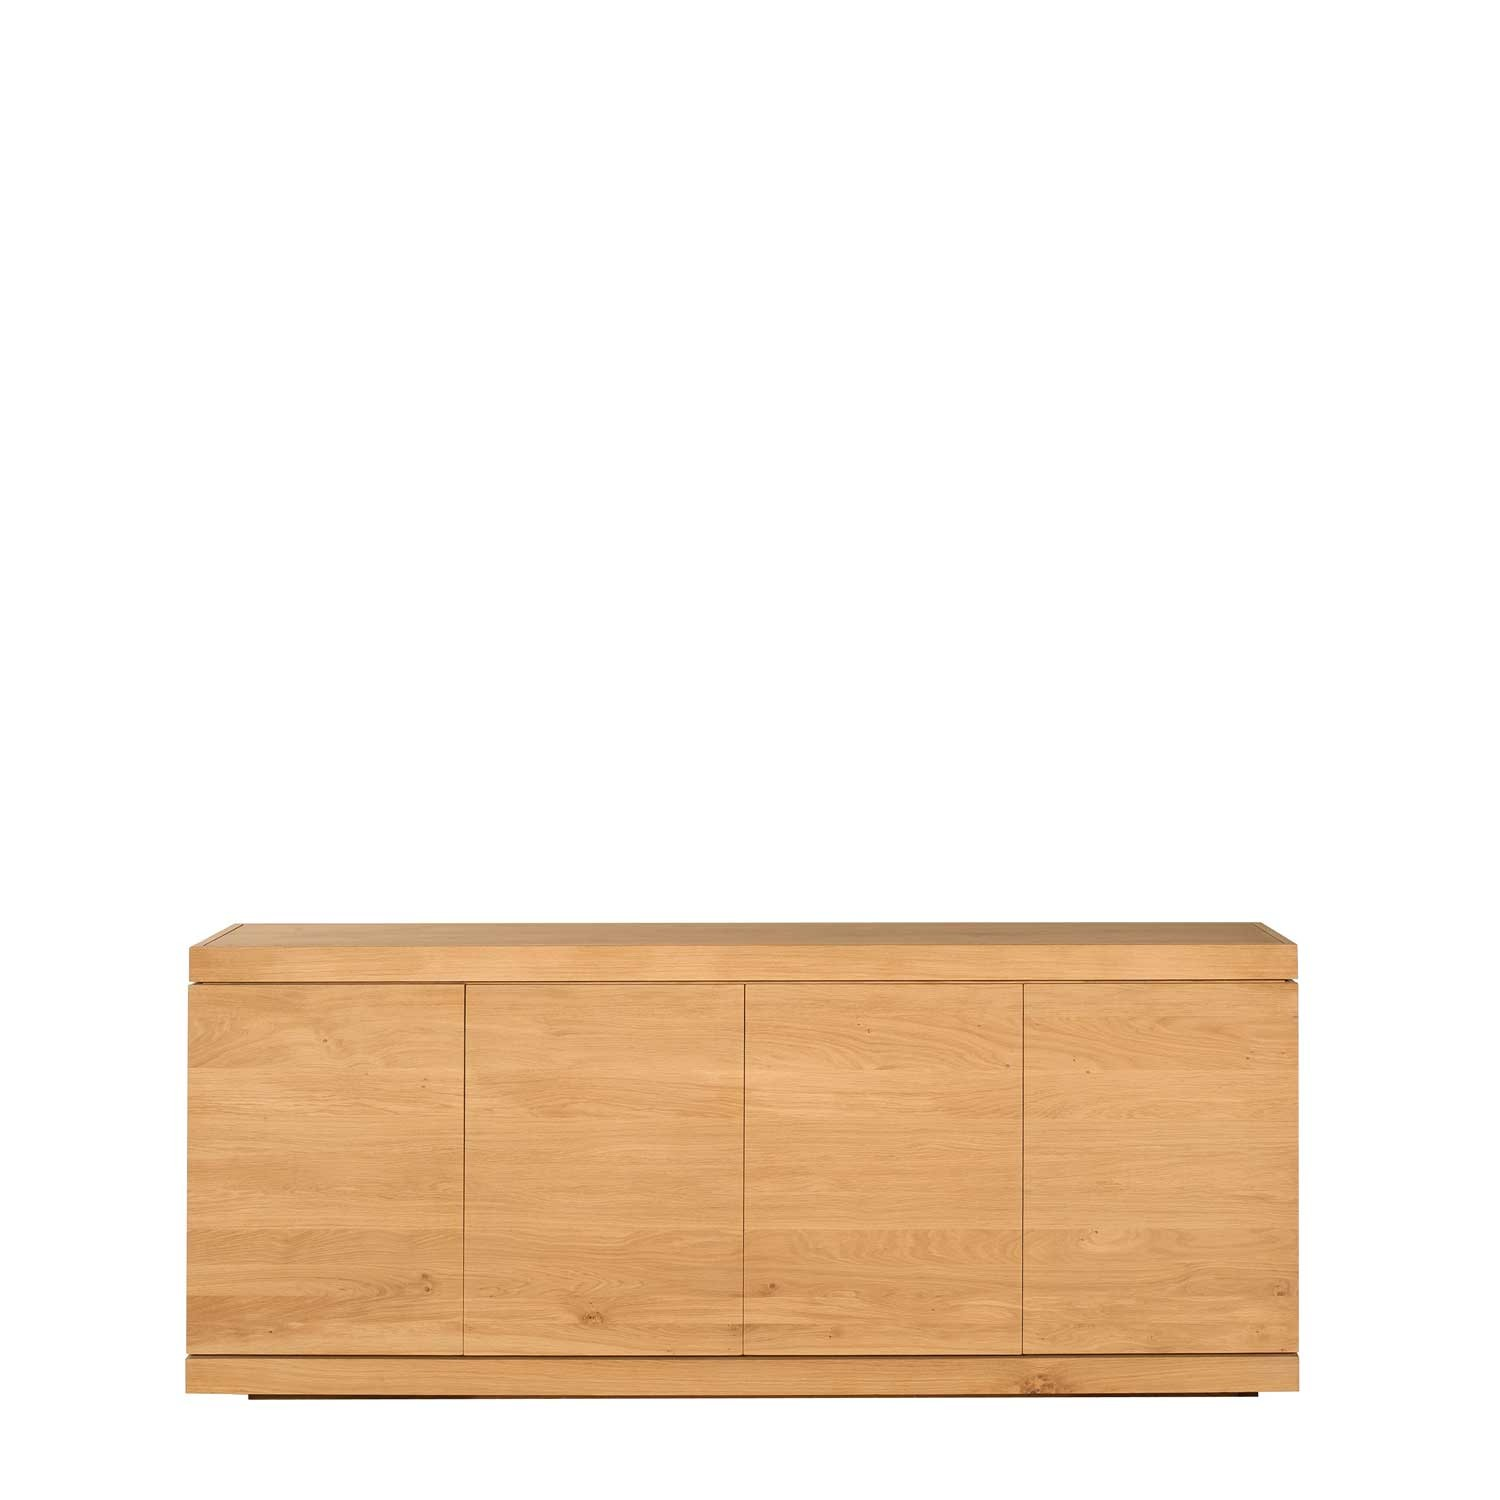 Ethnicraft Burger Oak Sideboard 150cm 3 Doors Solid Wood Furniture. Full resolution‎  photo, nominally Width 1500 Height 1500 pixels, photo with #A96622.